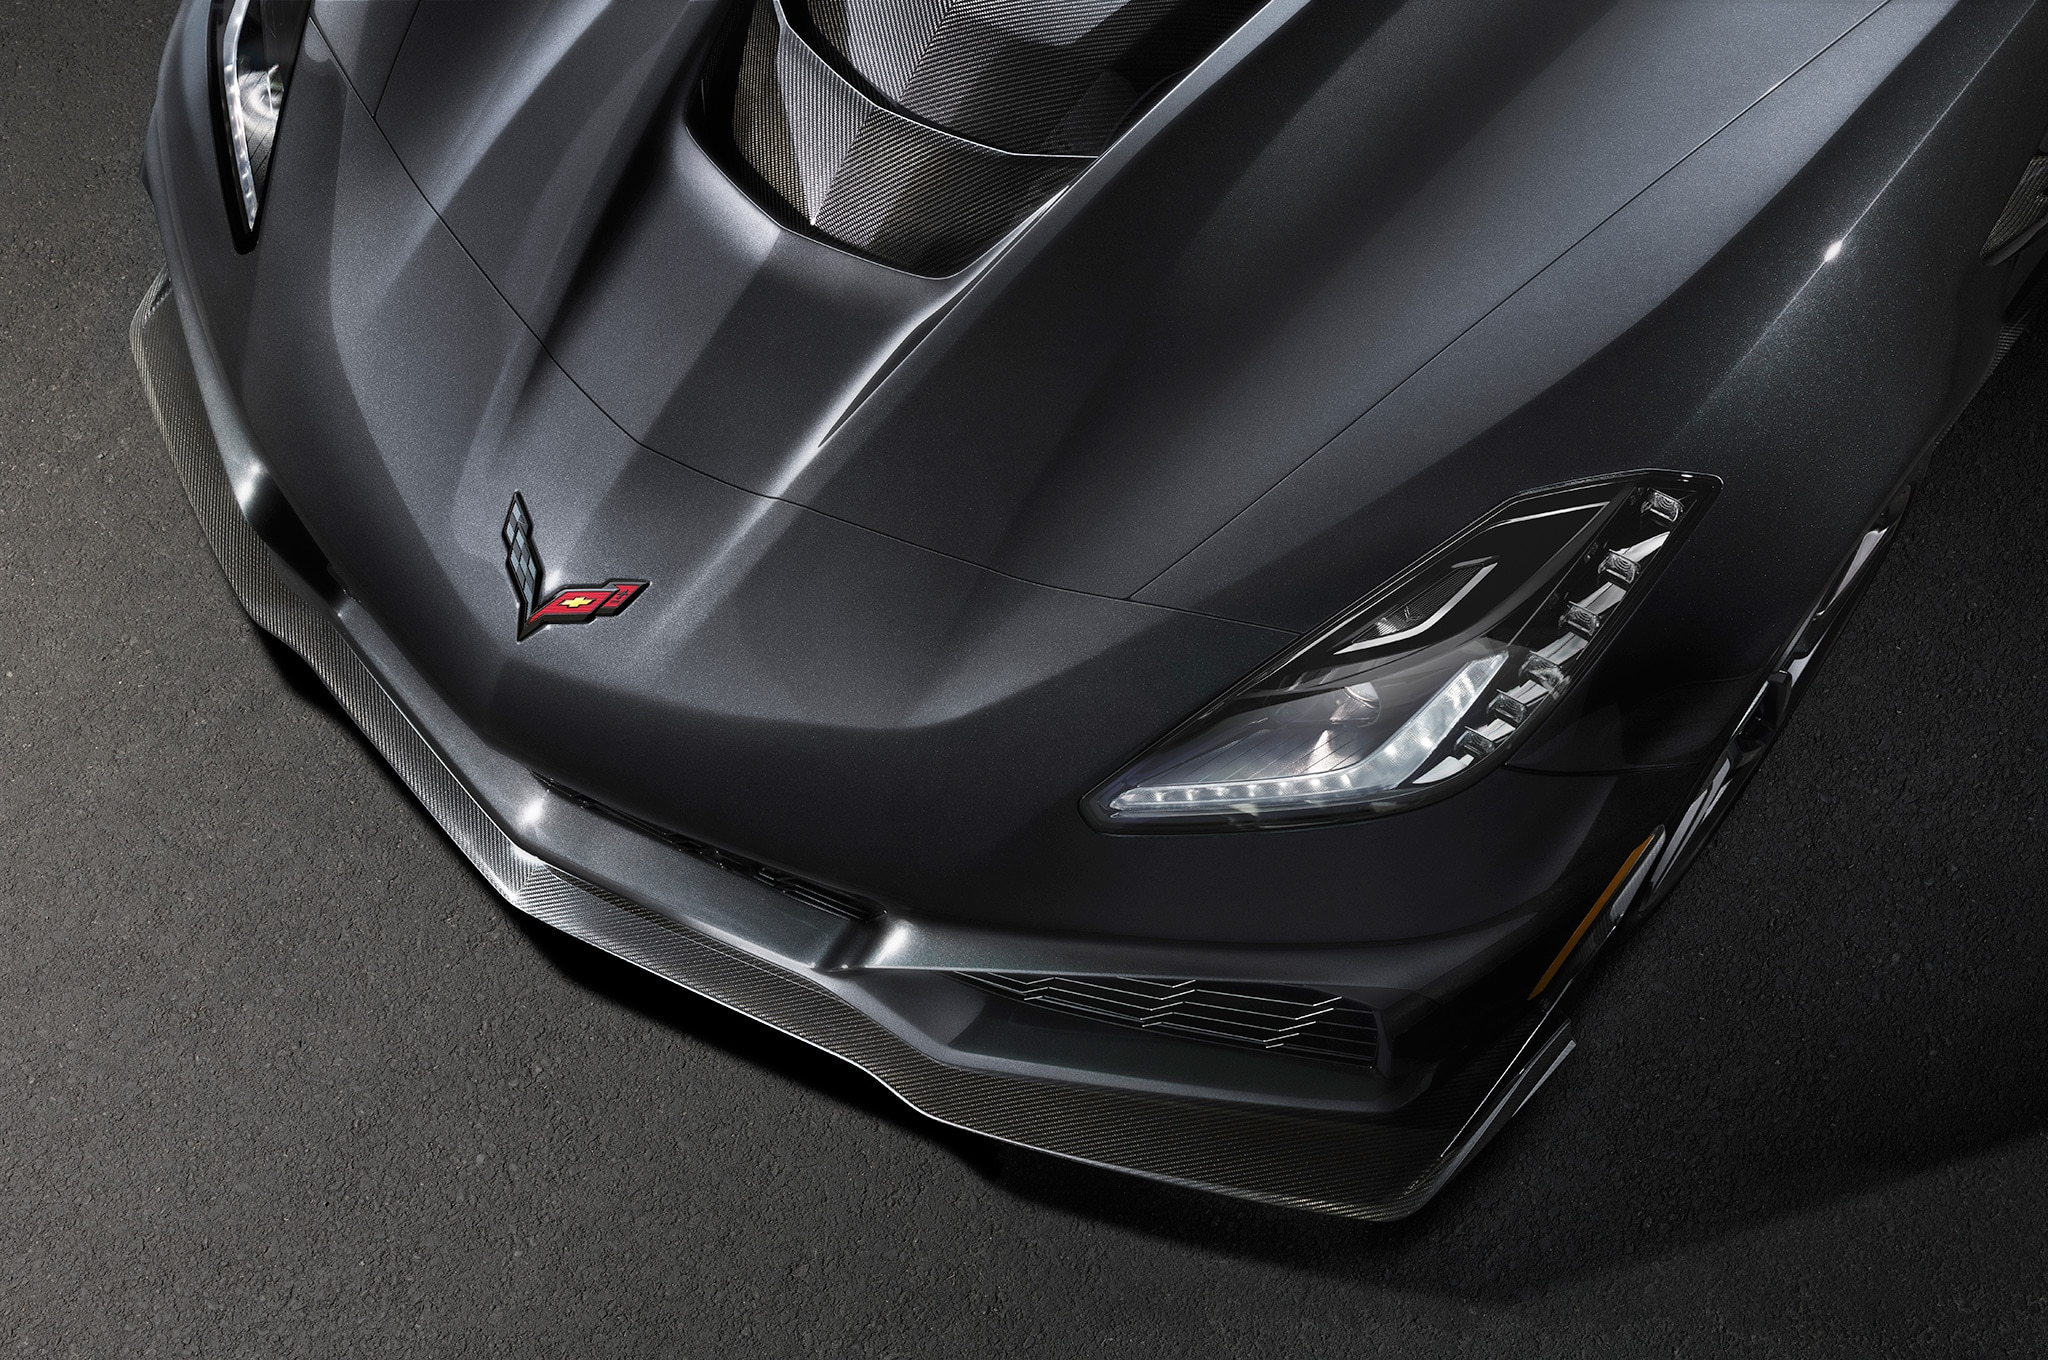 Chevrolet Corvette ZR1 By the Numbers